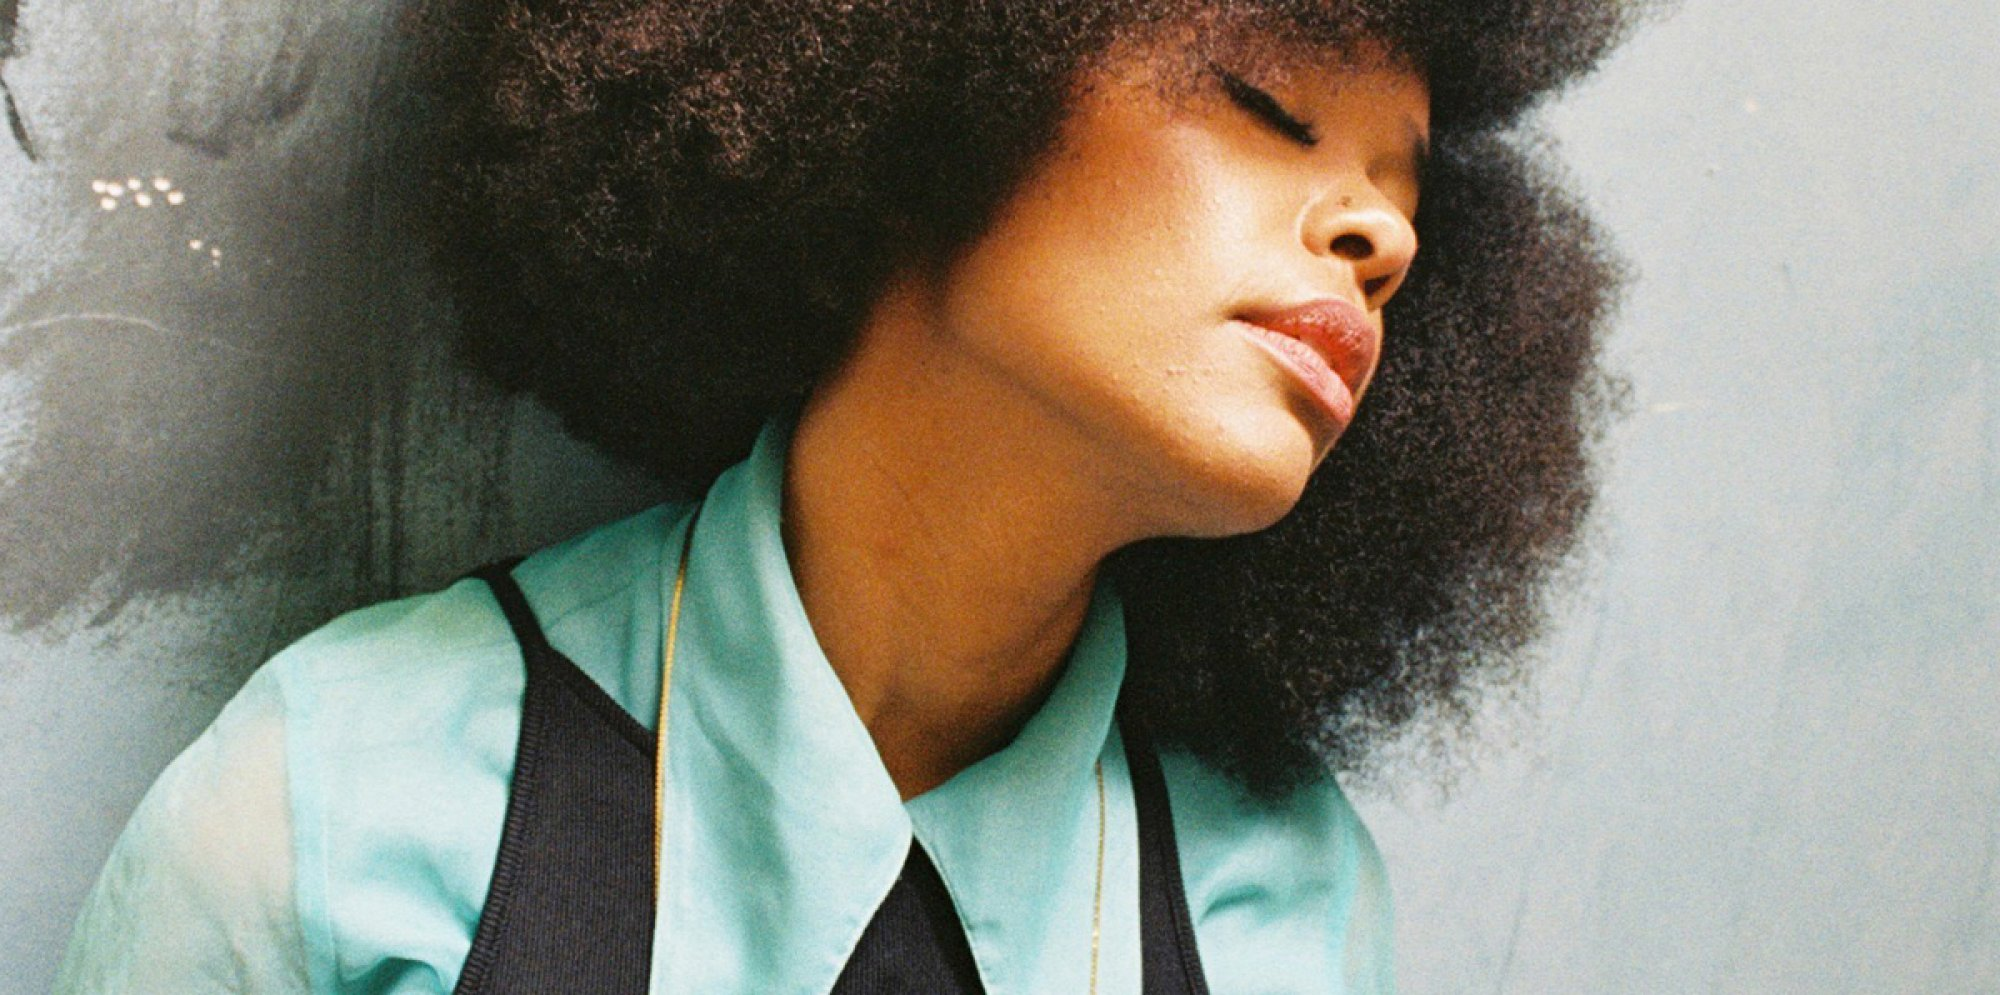 Abimaro: a young black woman with afro hair leans against a gray wall, her eyes are closed. She is wearing a a green blouse with big lapels, a black tank top over the blouse and a thin gold necklace.